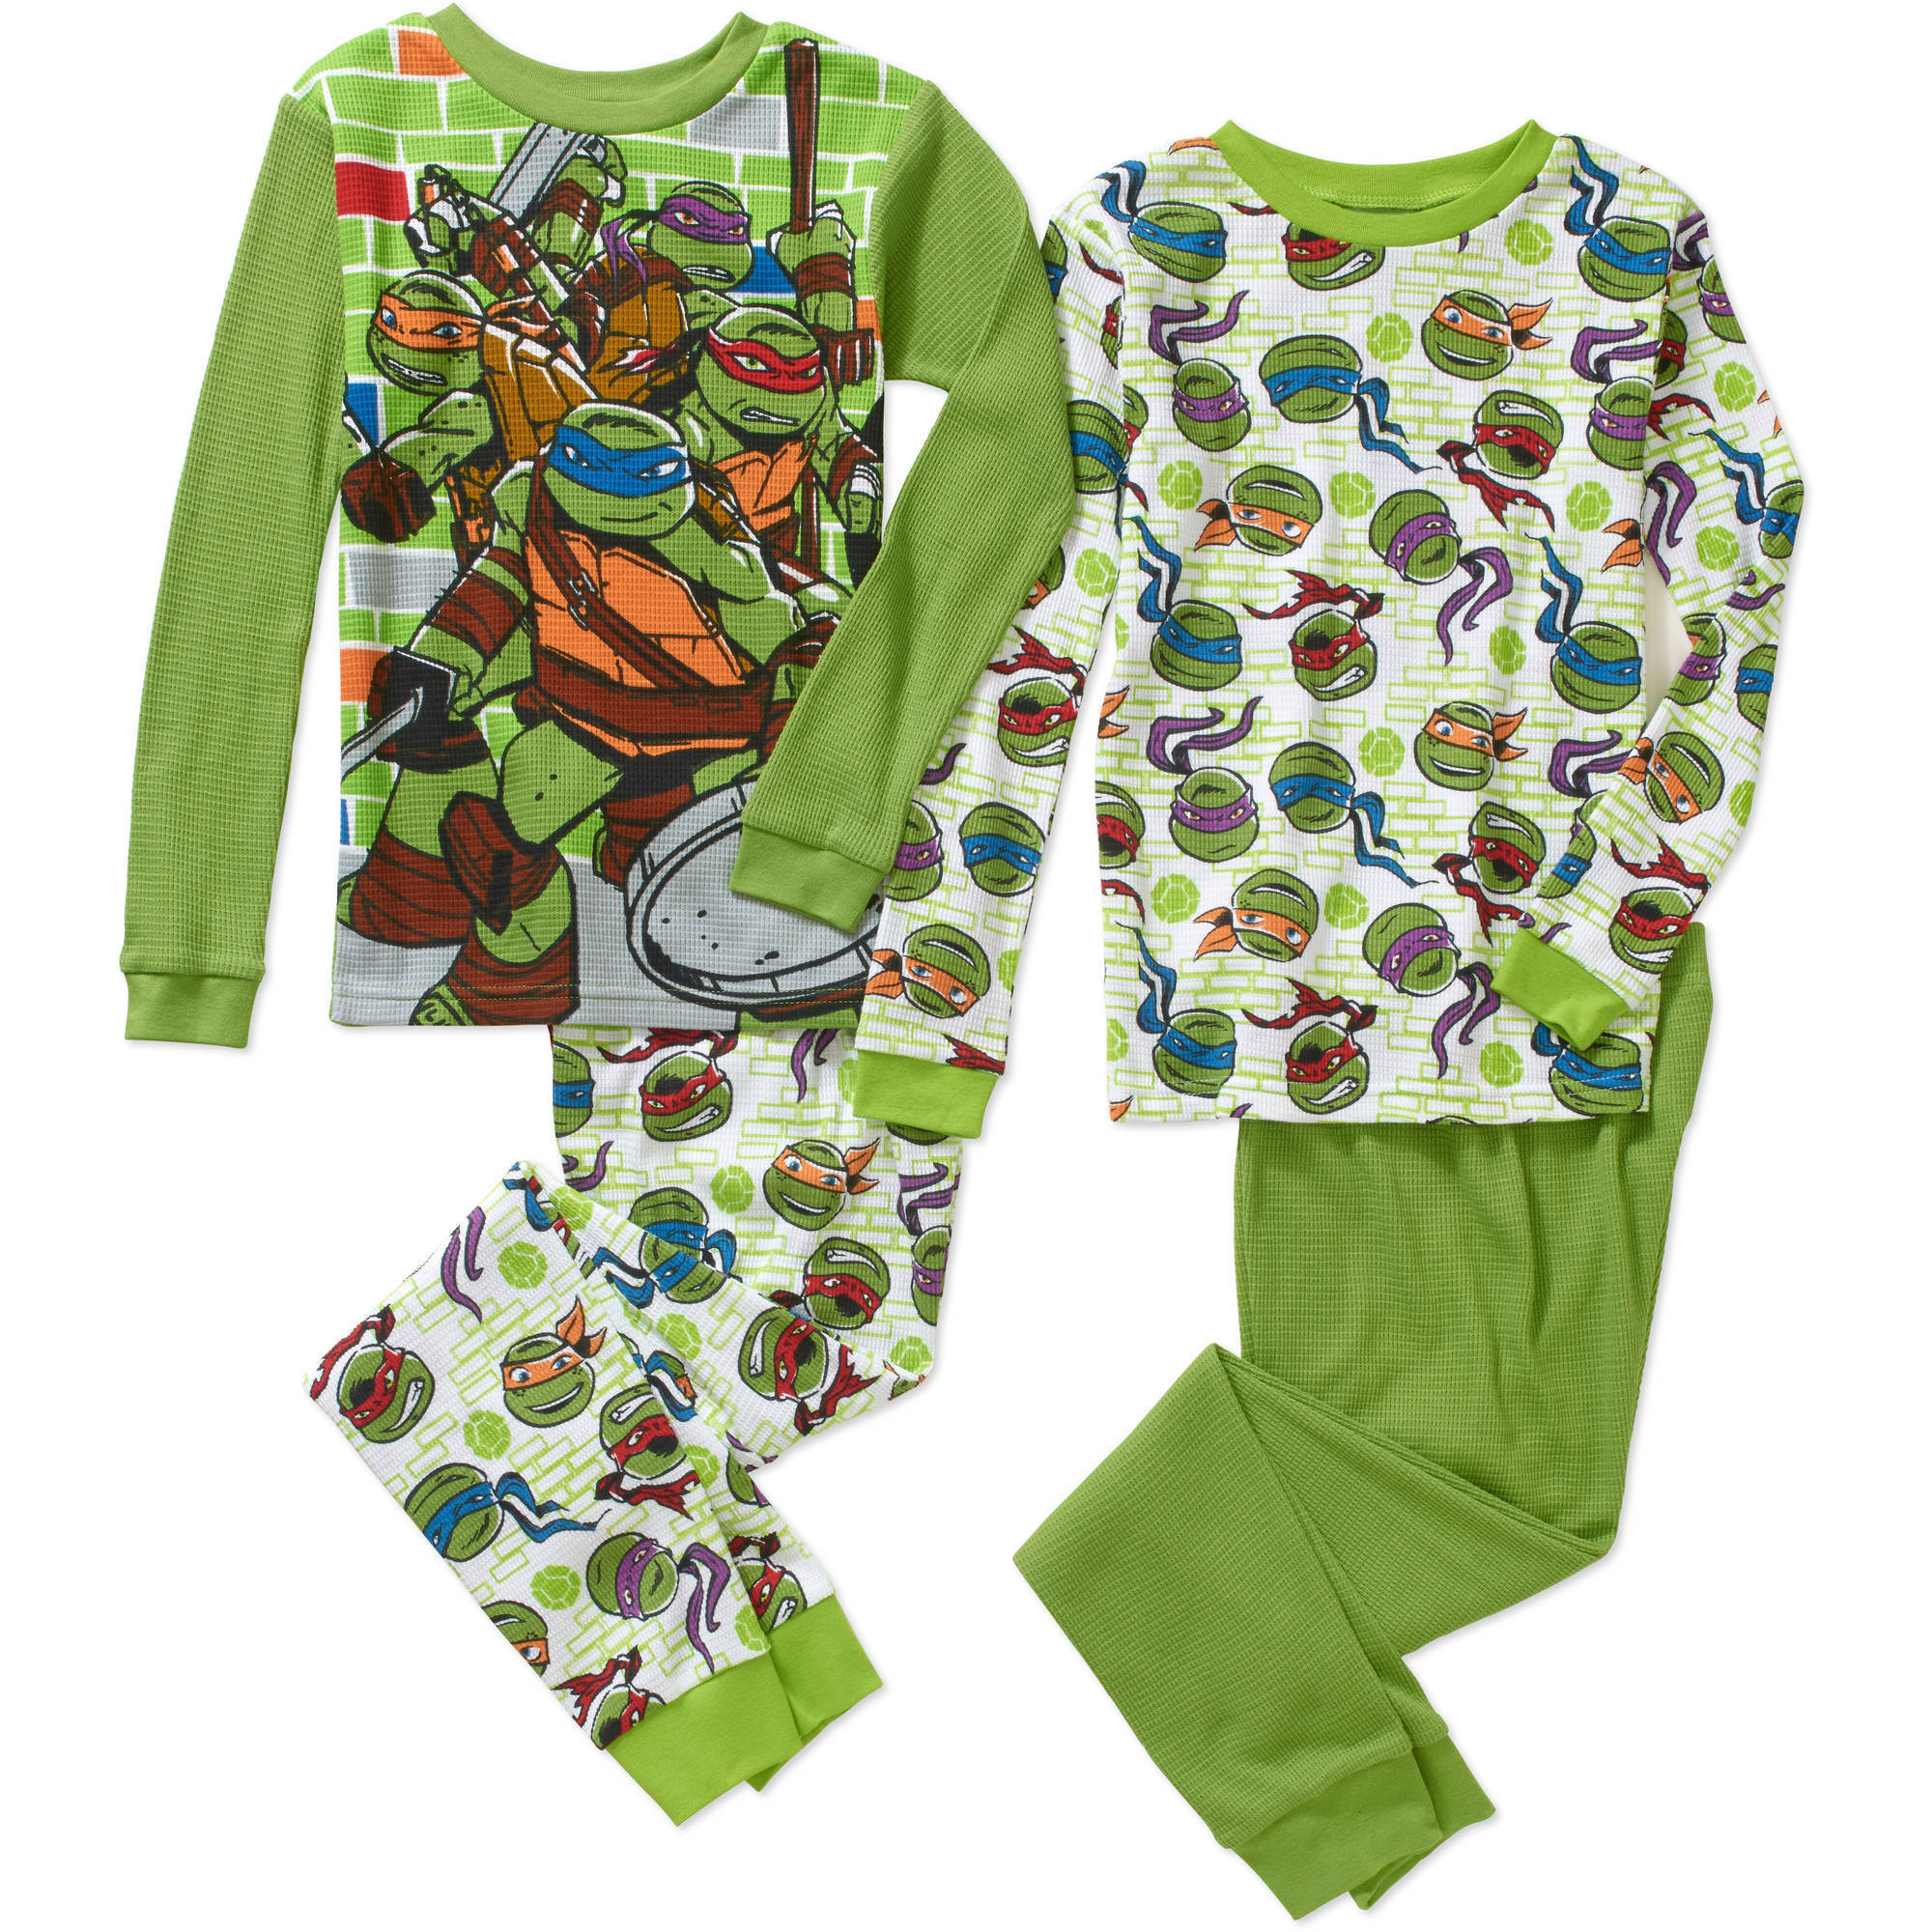 Boys' Licensed 4 Piece Cotton Thermal Set, Available in 4 Characters